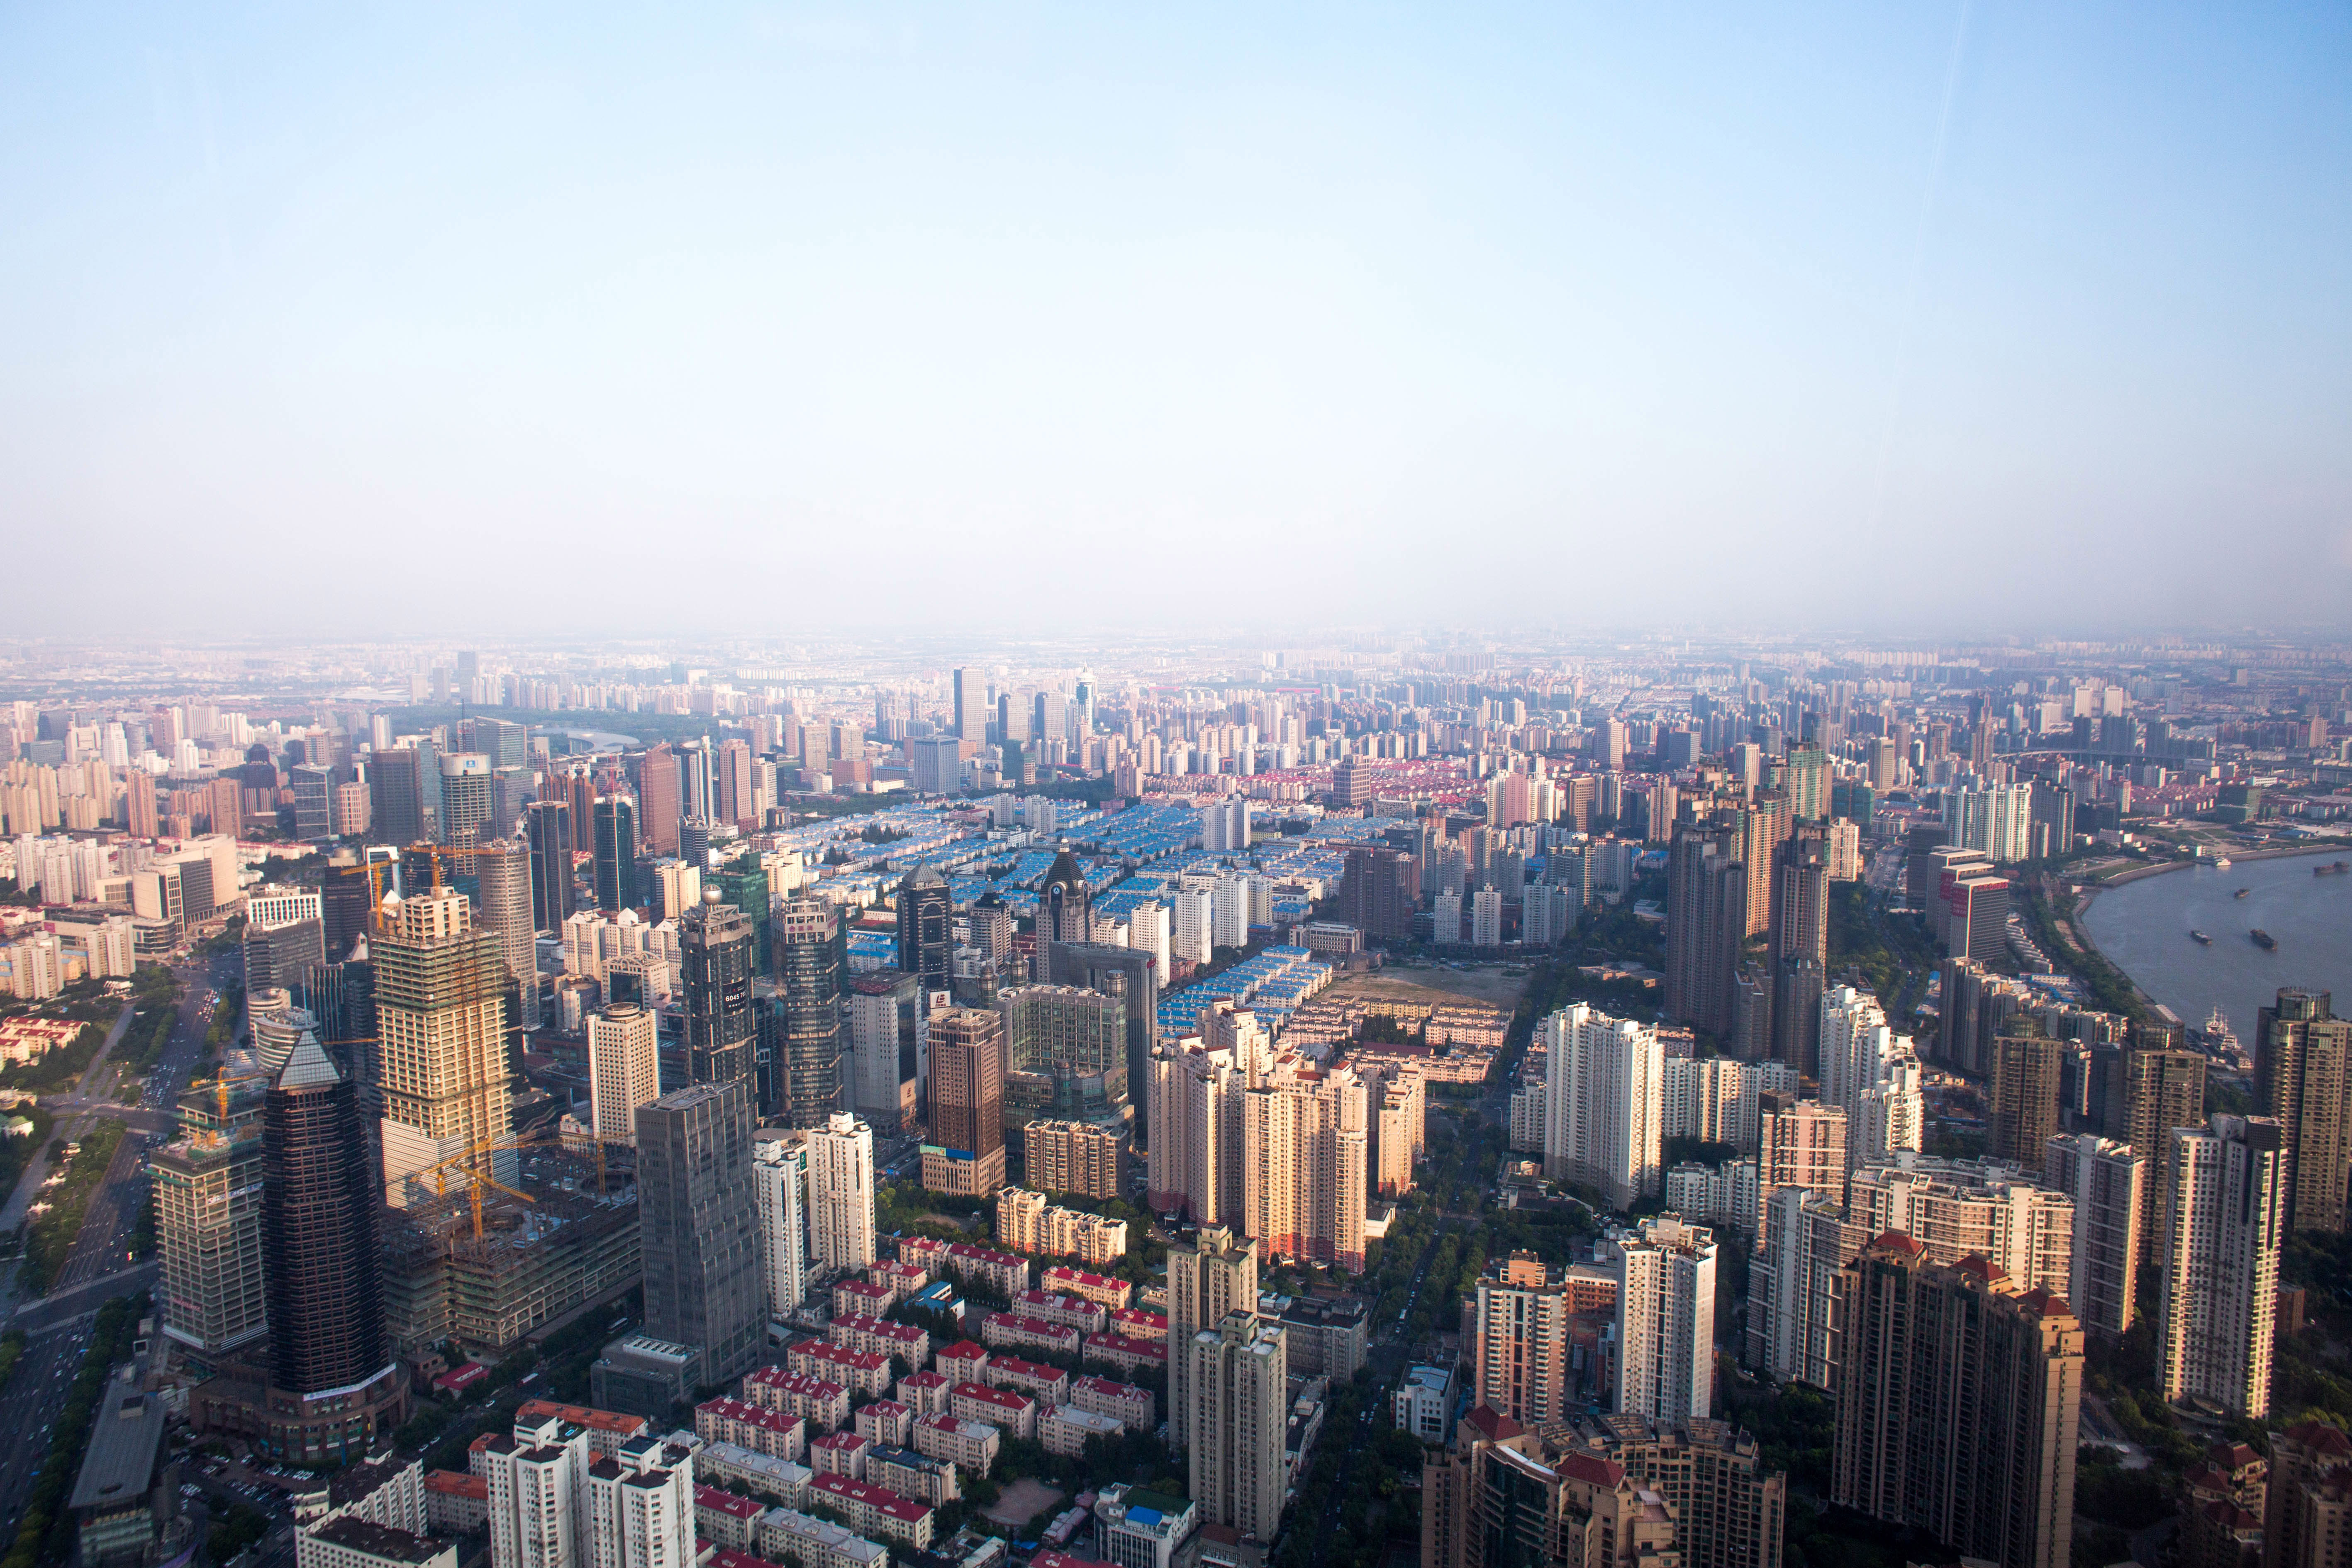 Overlook of Shanghai Cityscape in China image - Free stock photo ...